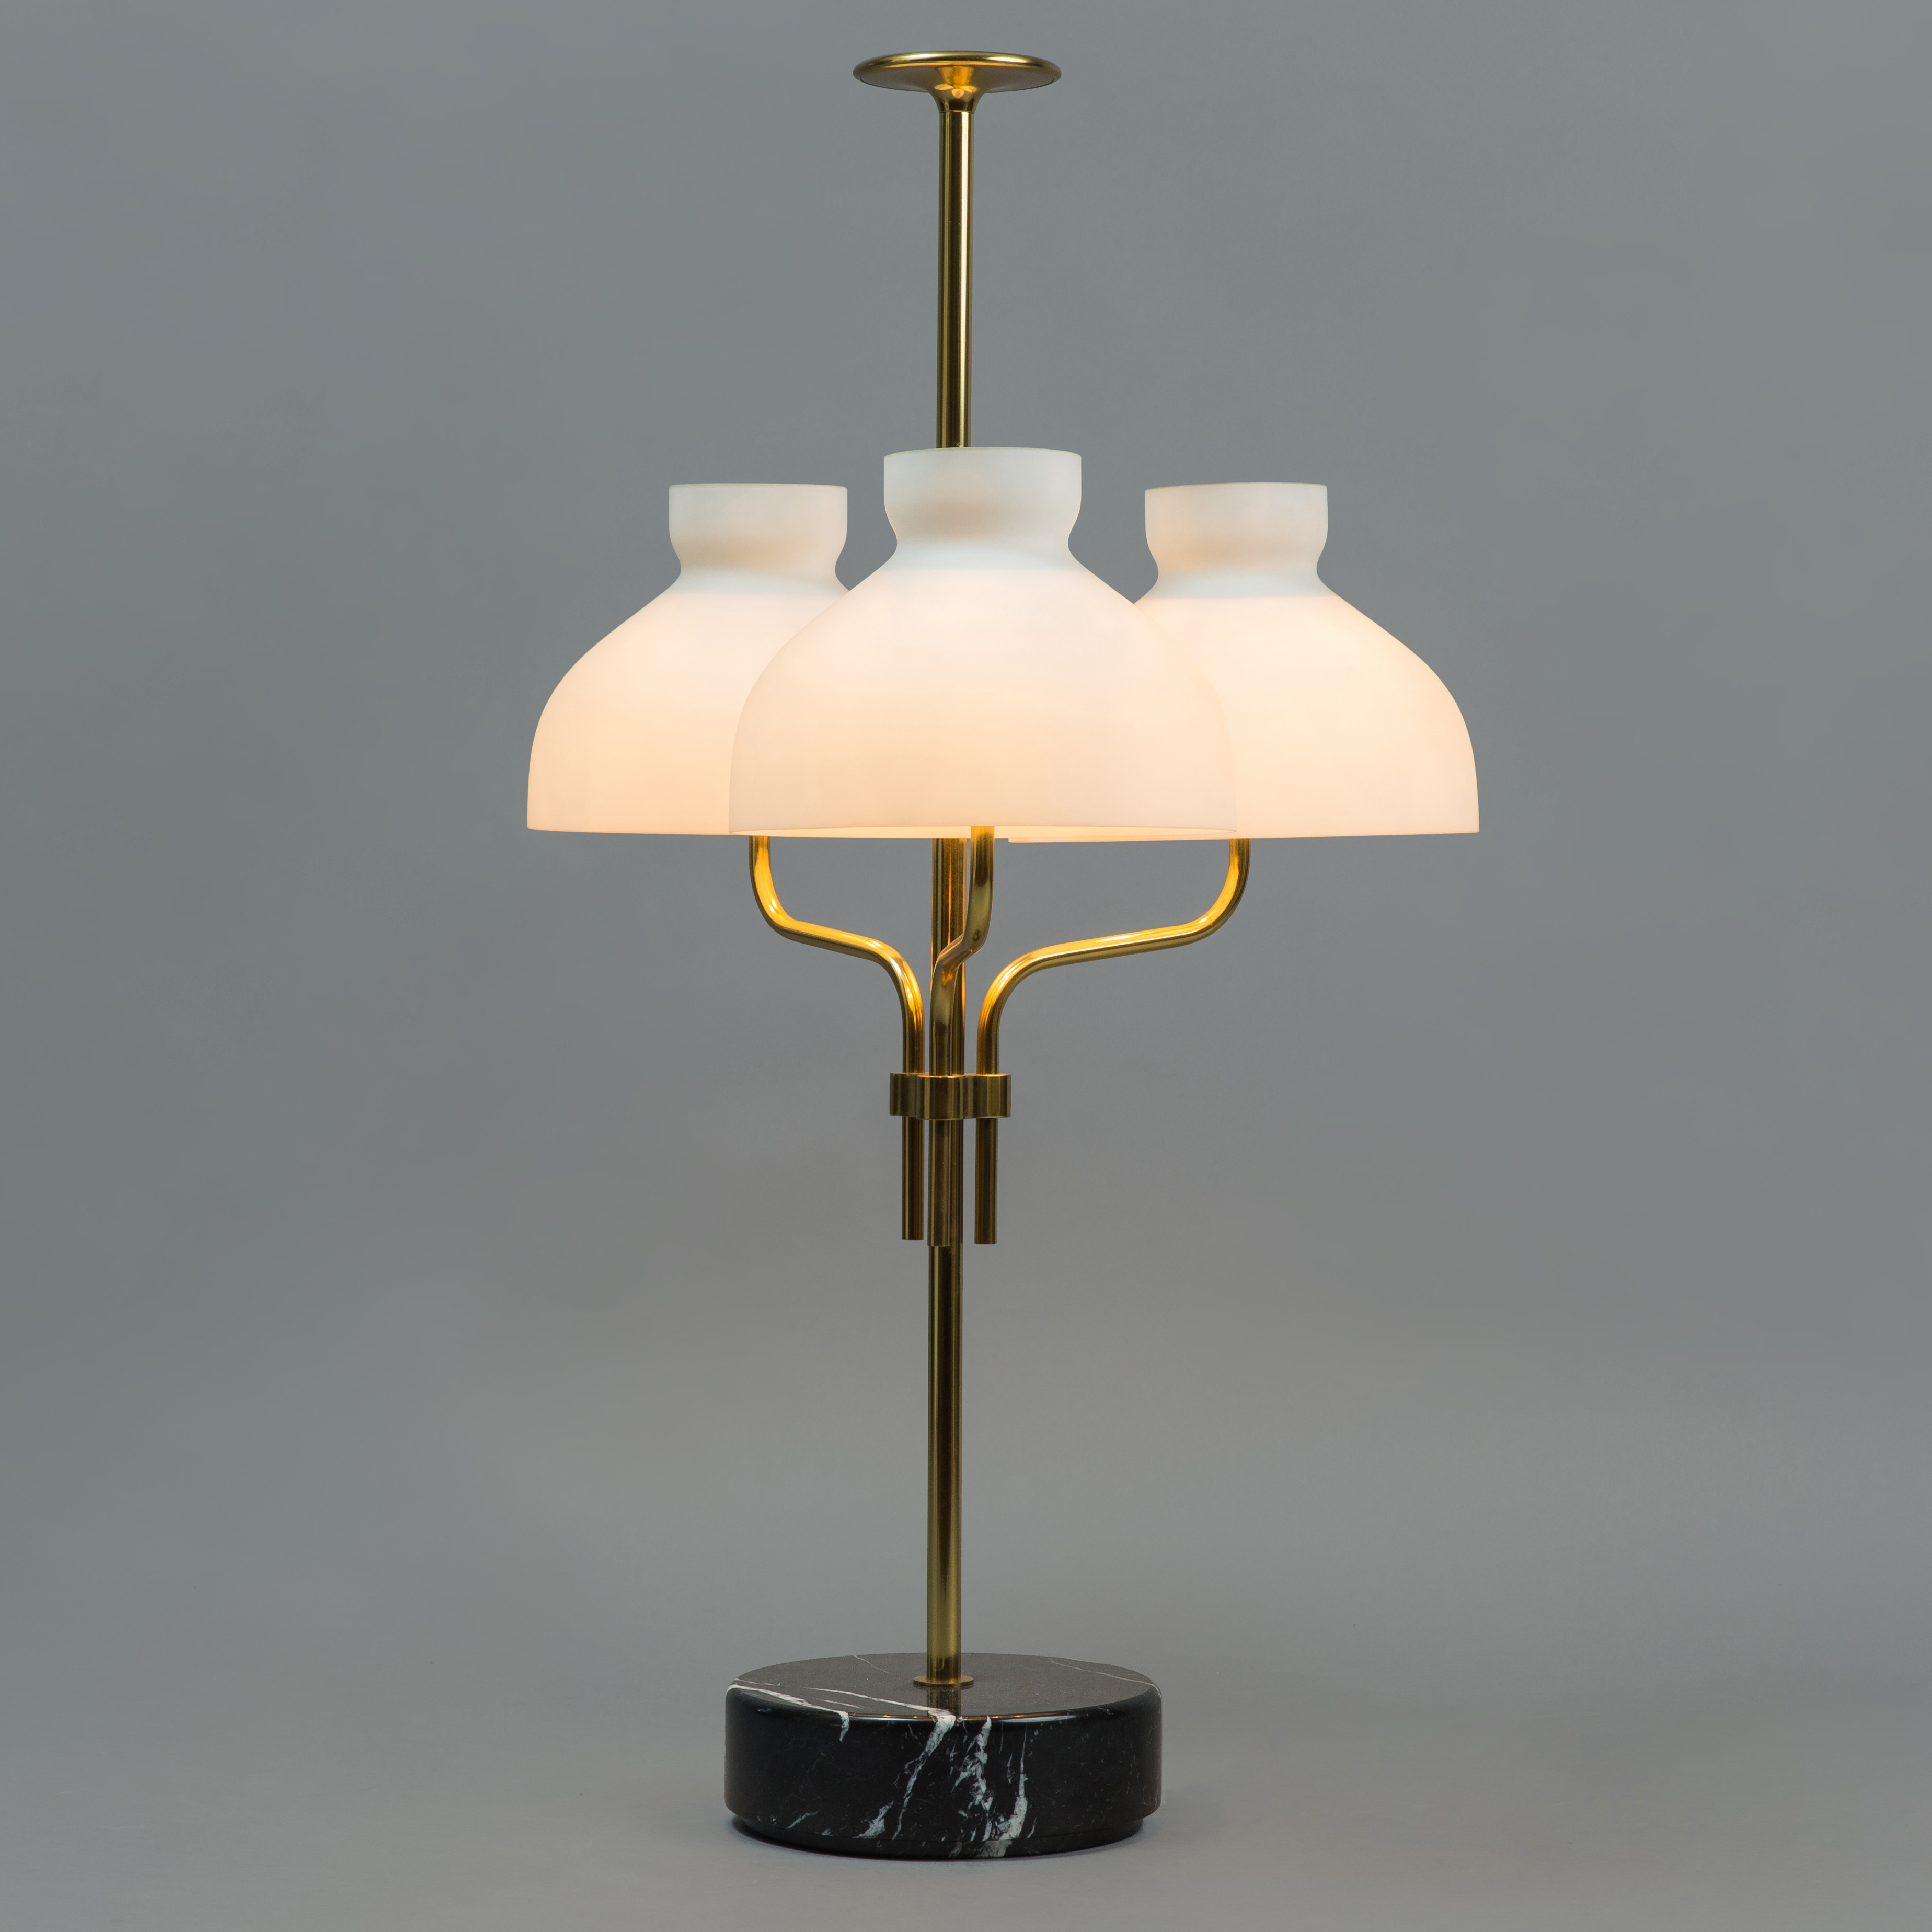 'Arenzano tre fiamme' Large Table Lamp by Ignazio Gardella for Azucena | soyun k.